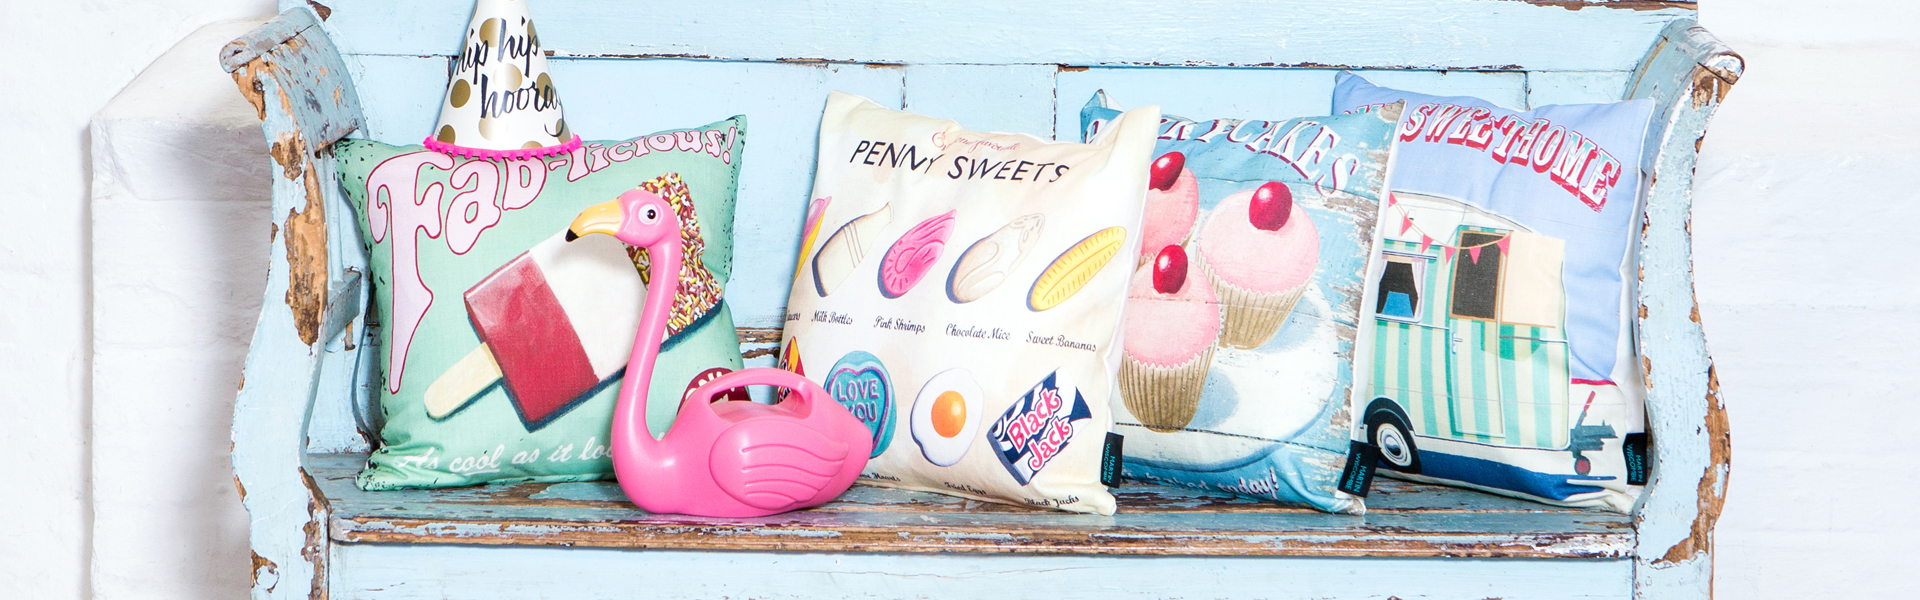 WELOVECUSHIONS